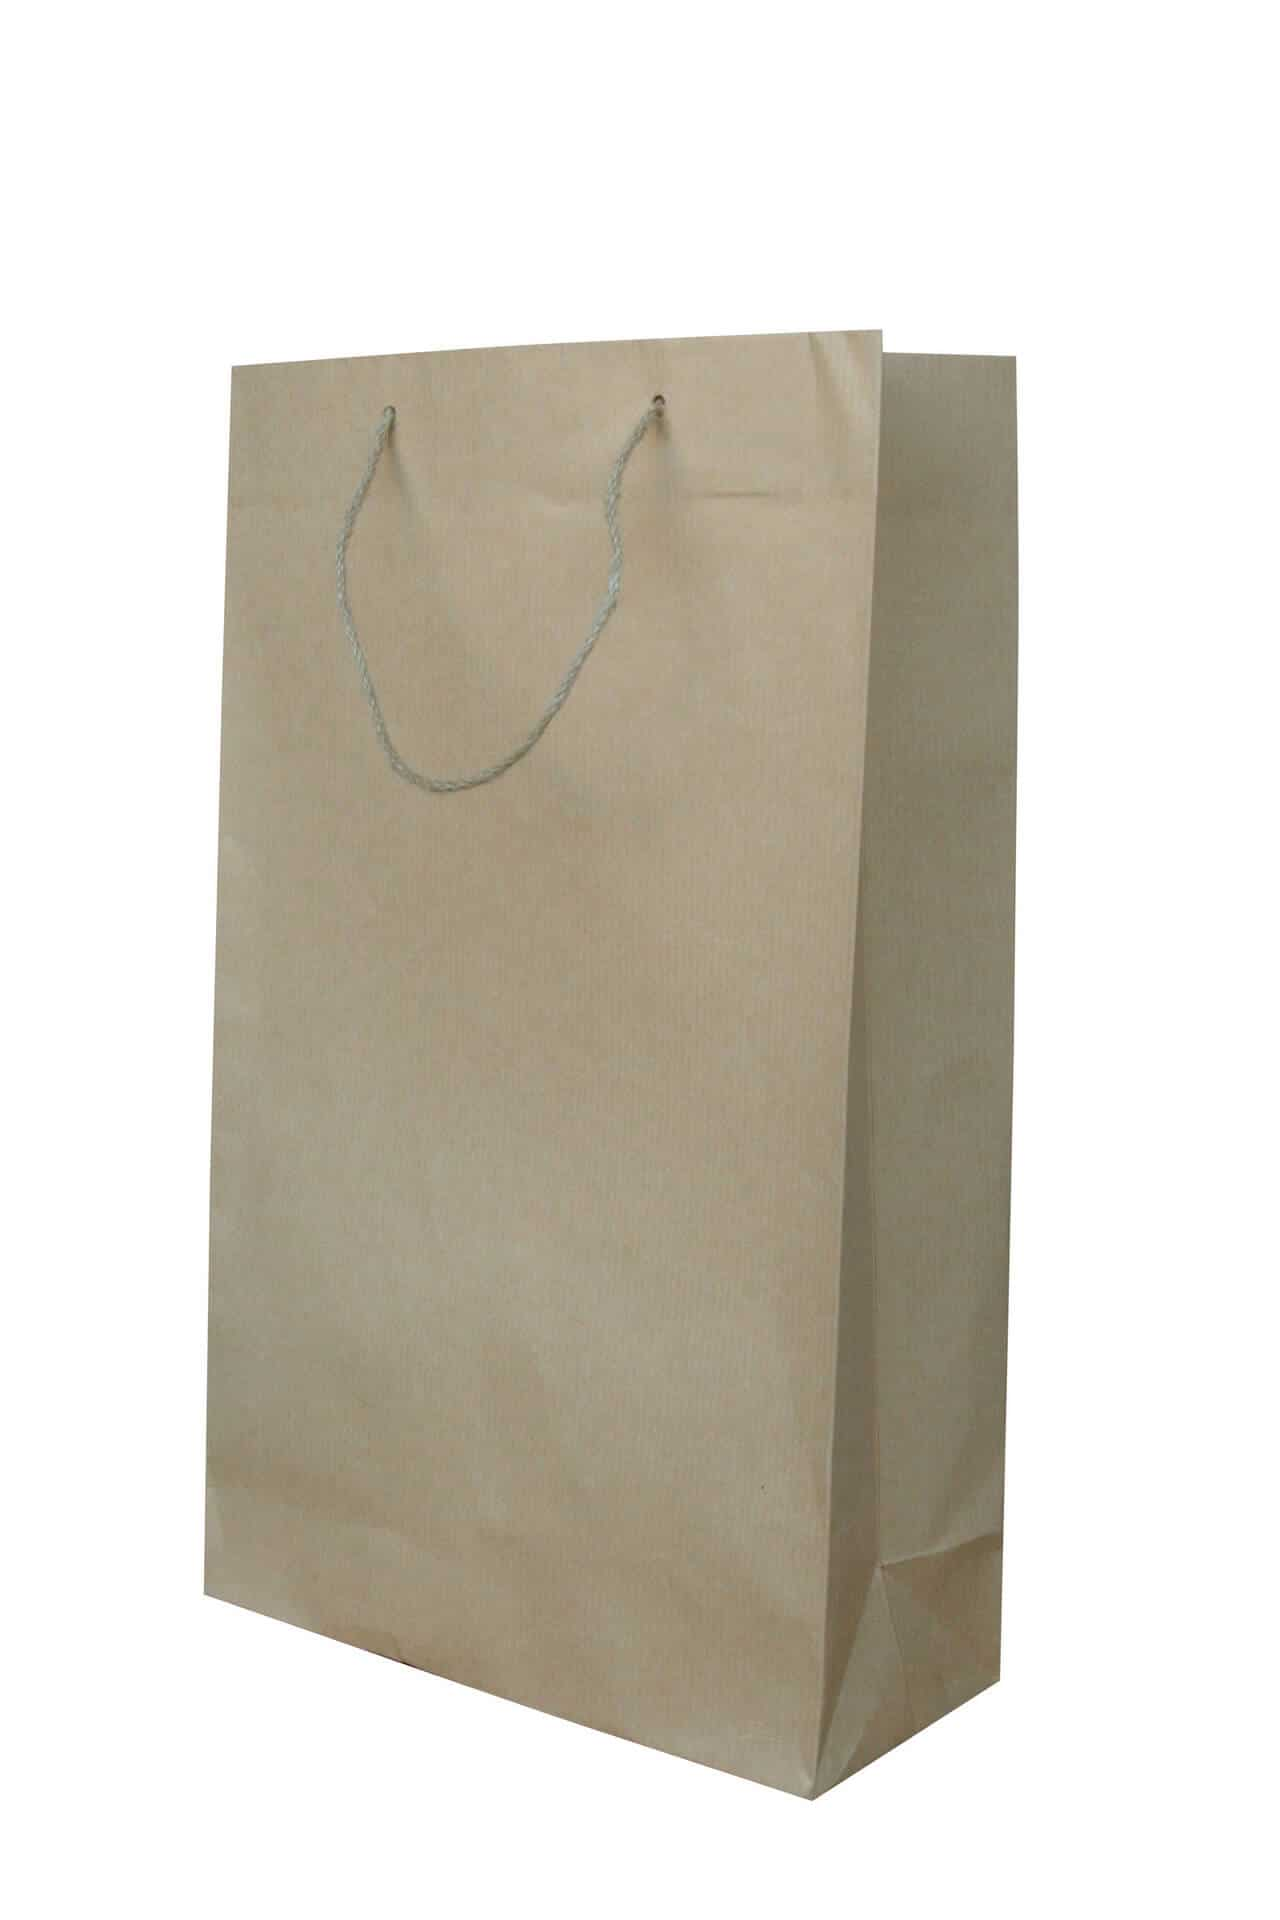 Custom thesis paper bags uk